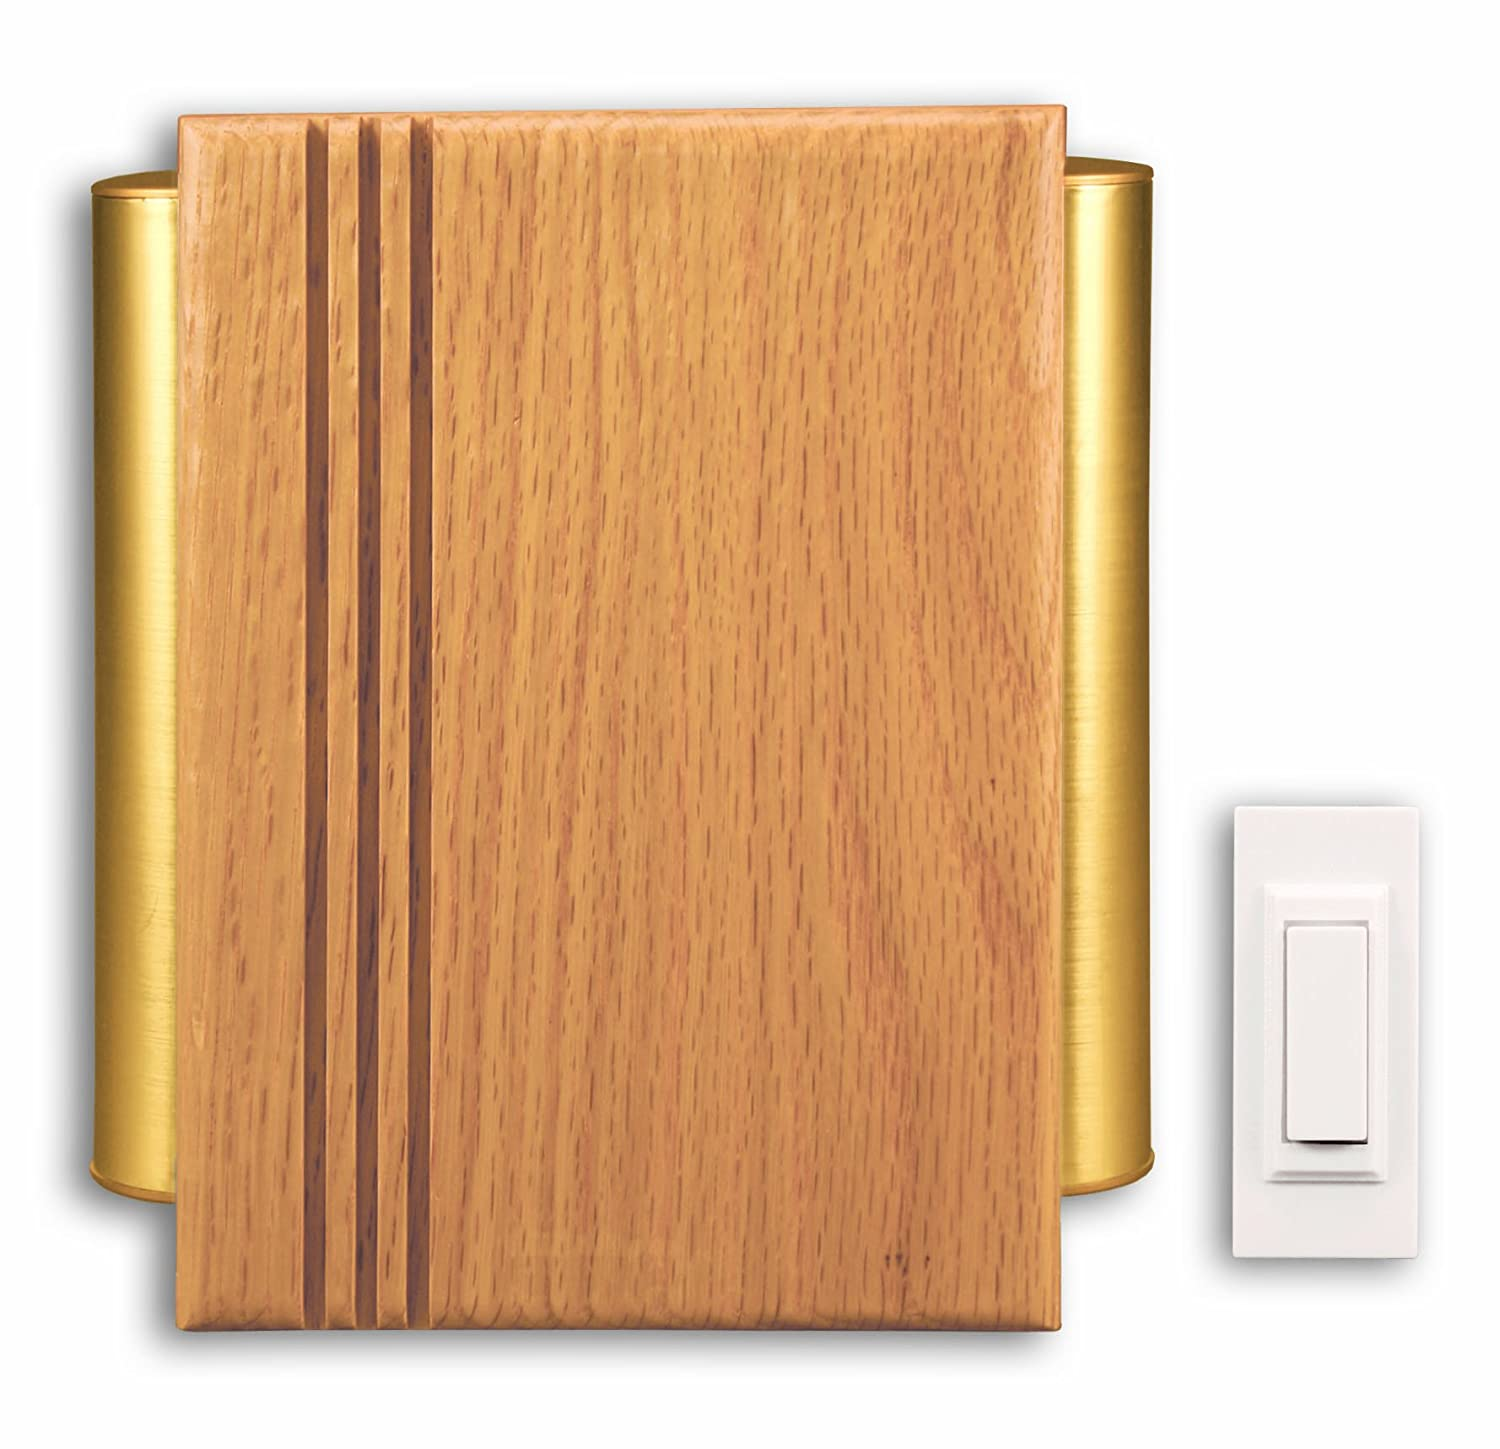 Heath Zenith SL-7882-02 Traditional Décor Wireless Door Chime Oak and Satin-Finish Brass - Doorbell Kits - Amazon.com  sc 1 st  Amazon.com : door chimes - pezcame.com